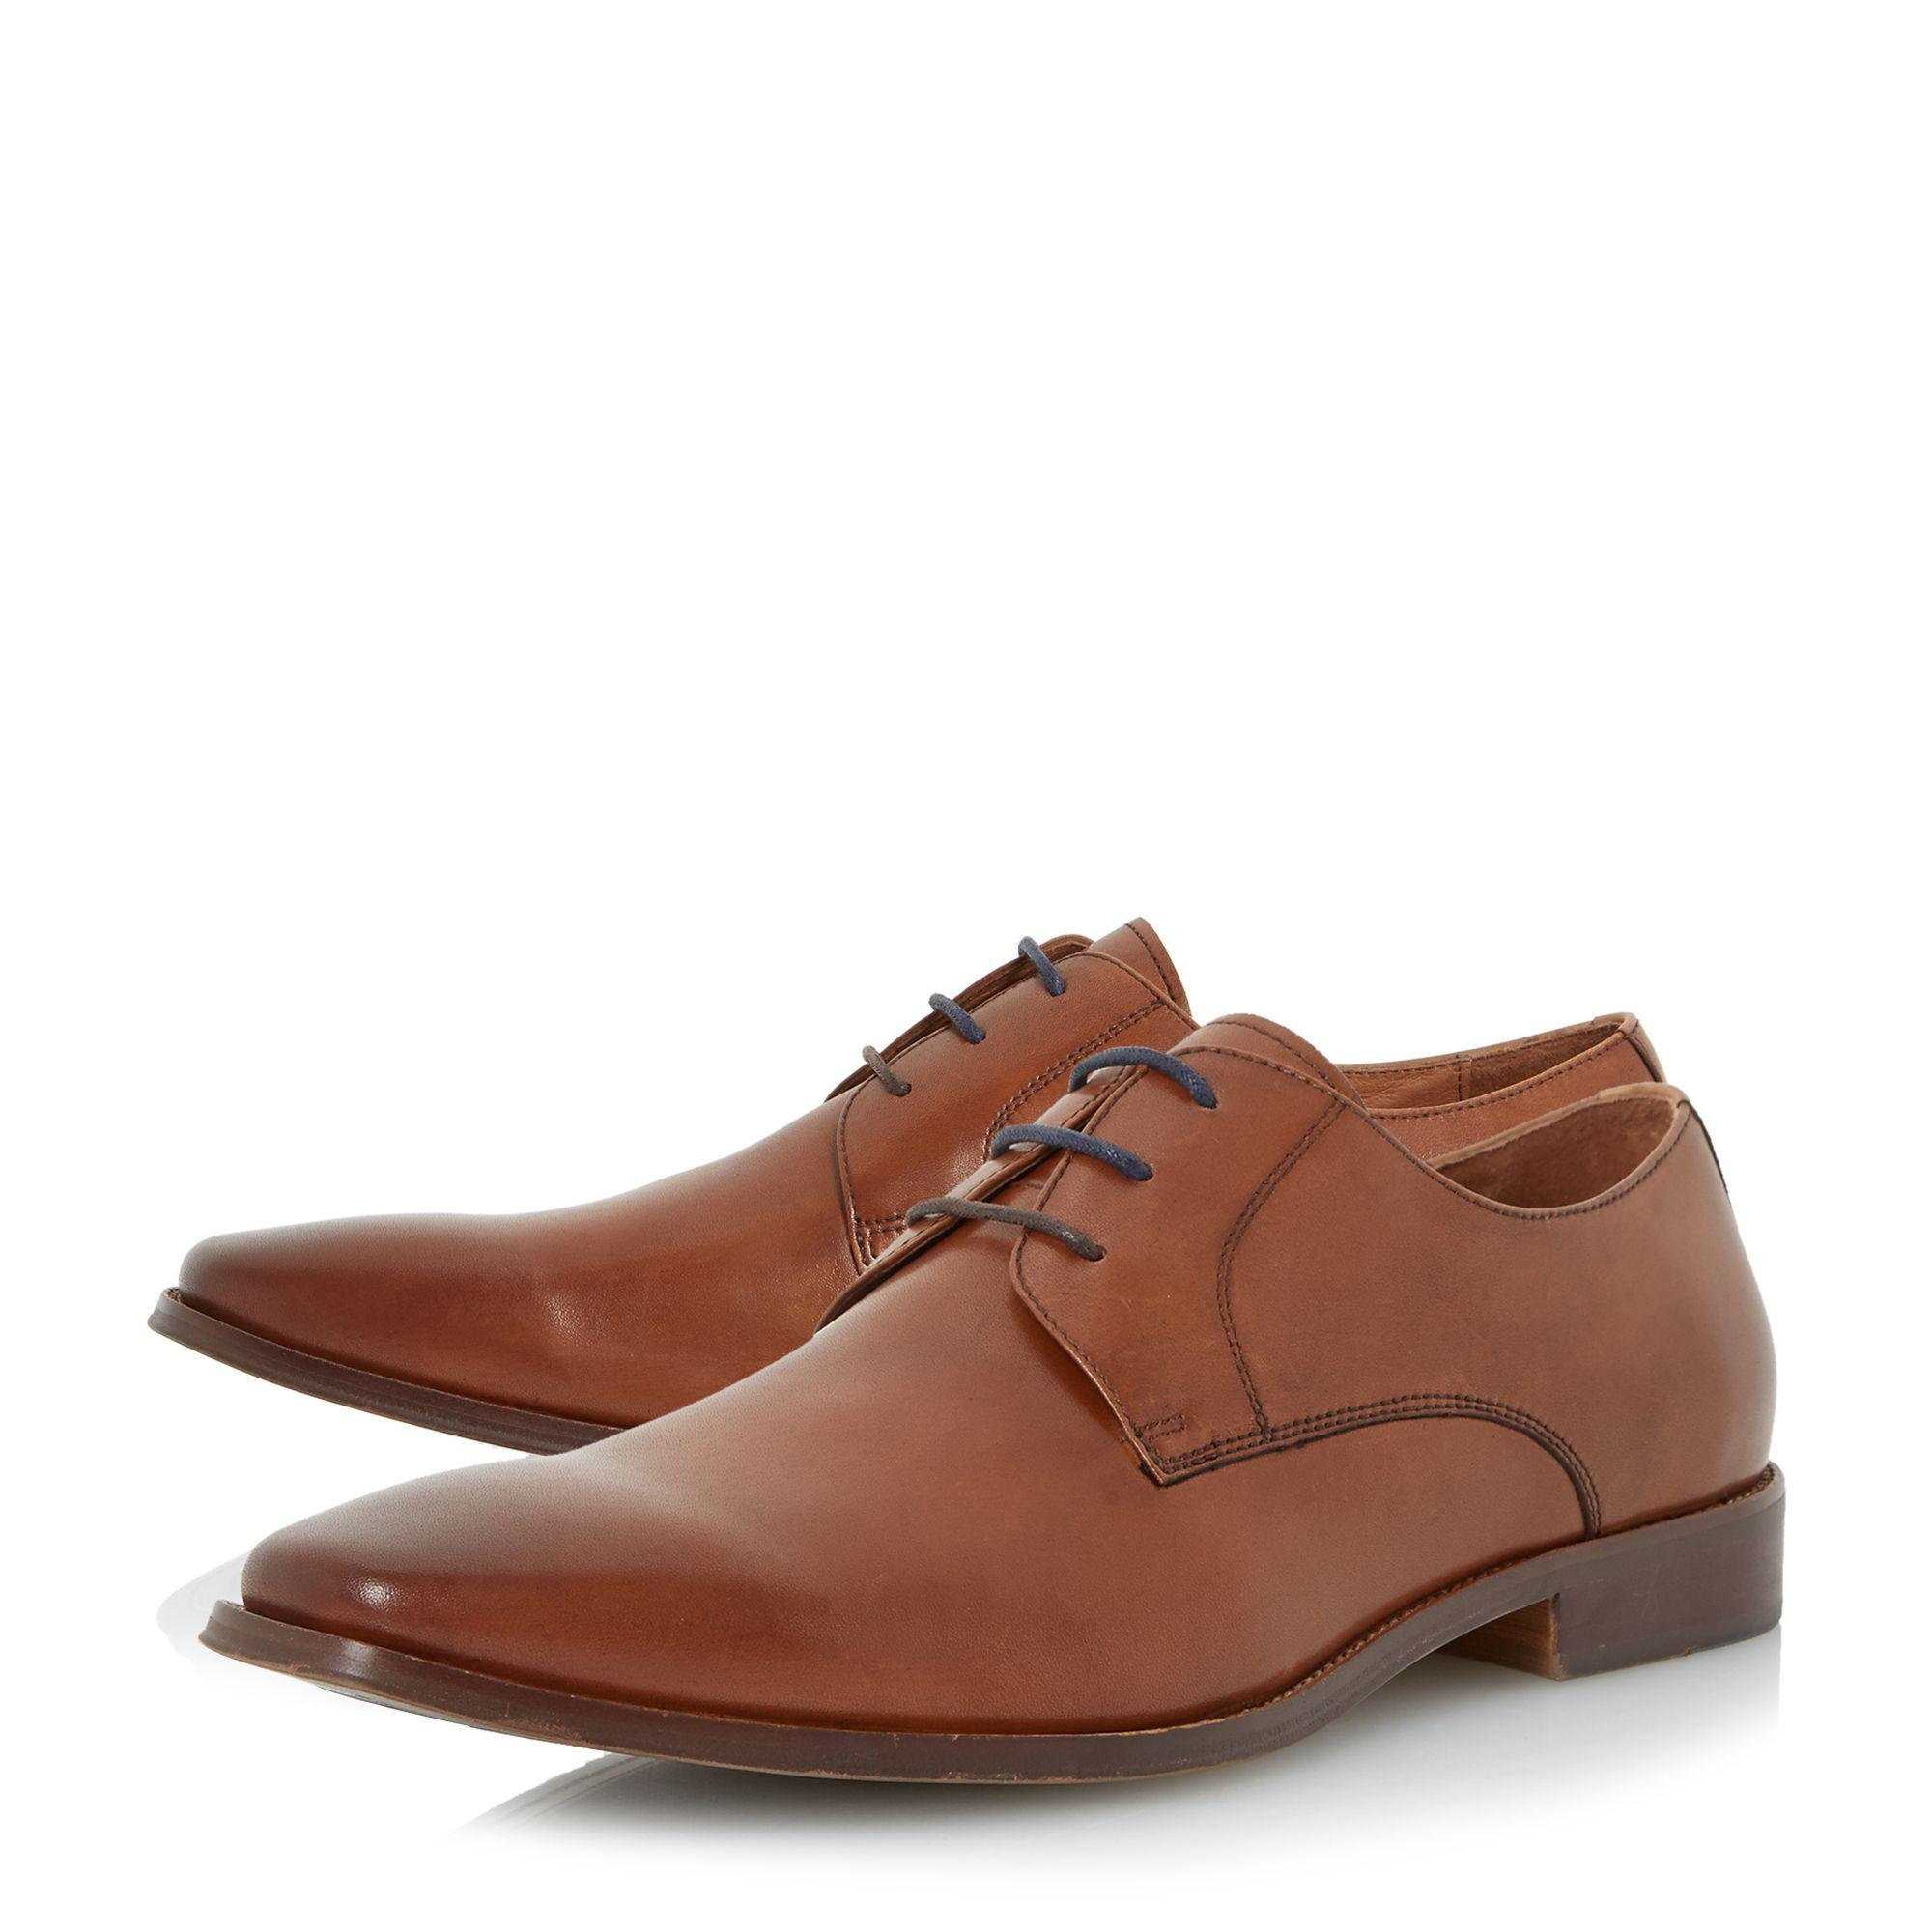 clearance high quality Tan 'Wrichmonds' wide fit square toe derby shoe discount price qitVMP3zbx